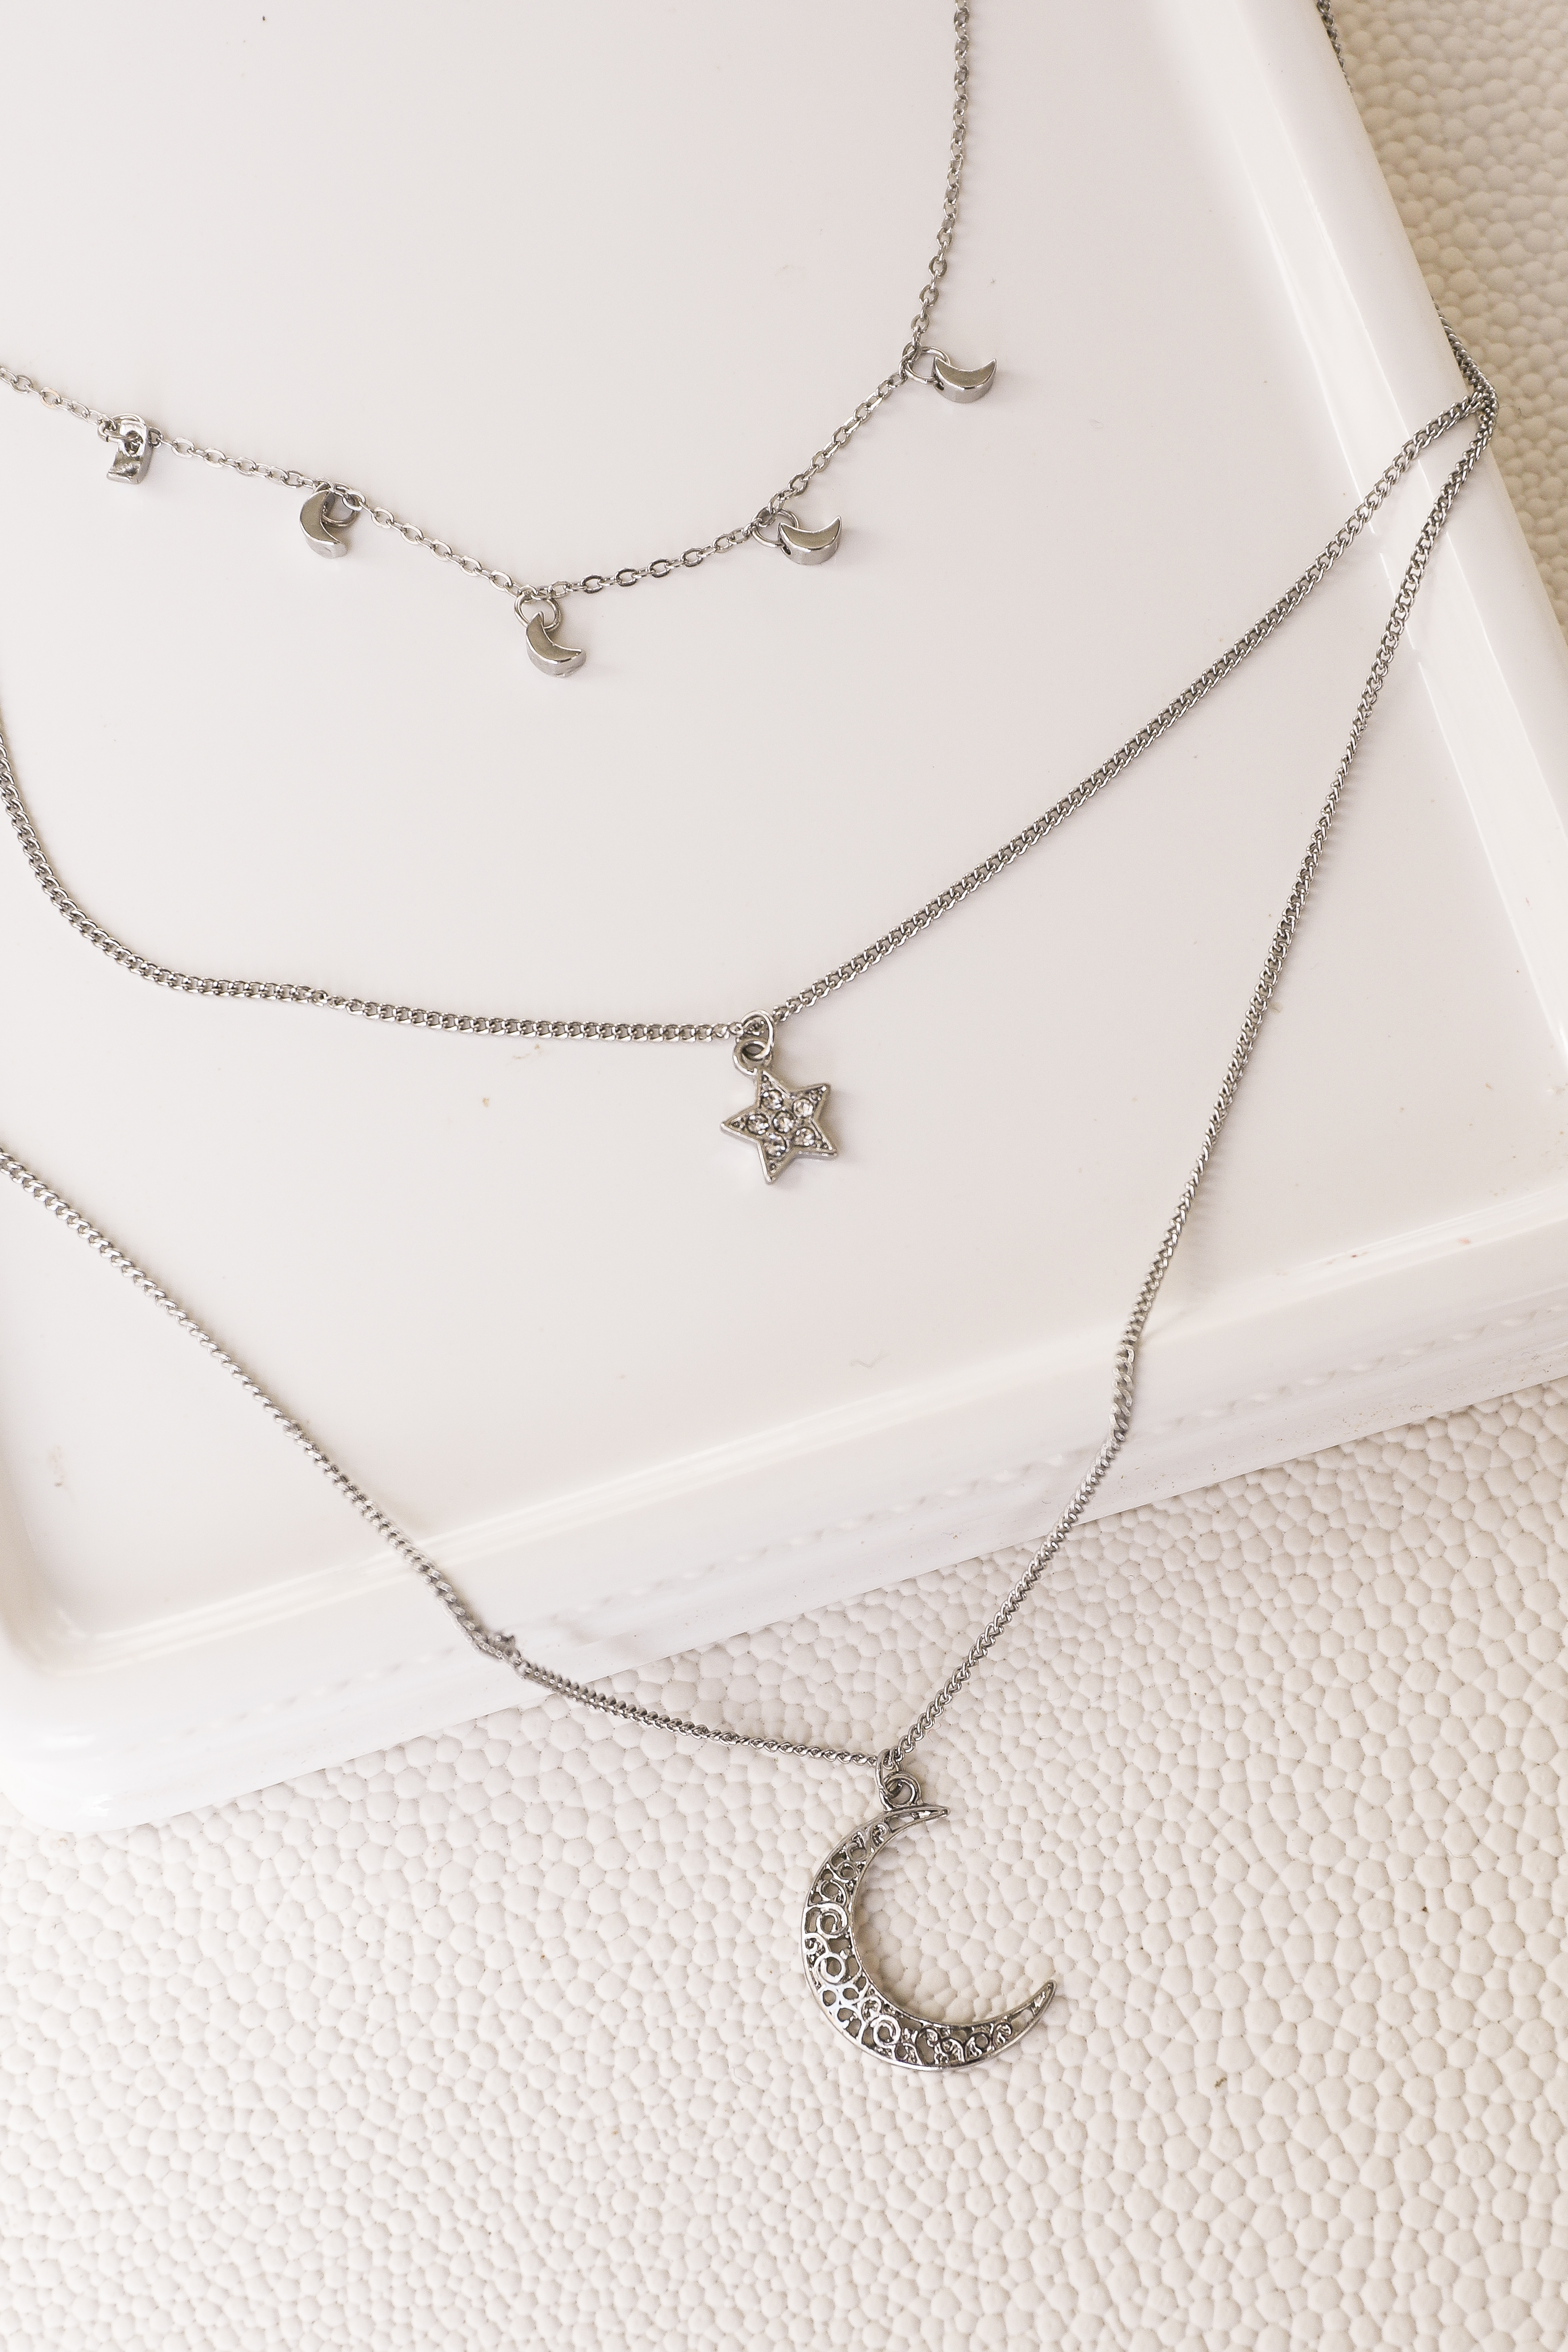 Double Layer Name Necklace Gold Layers Necklace Layering Name Necklace Double Necklace Moon And Star